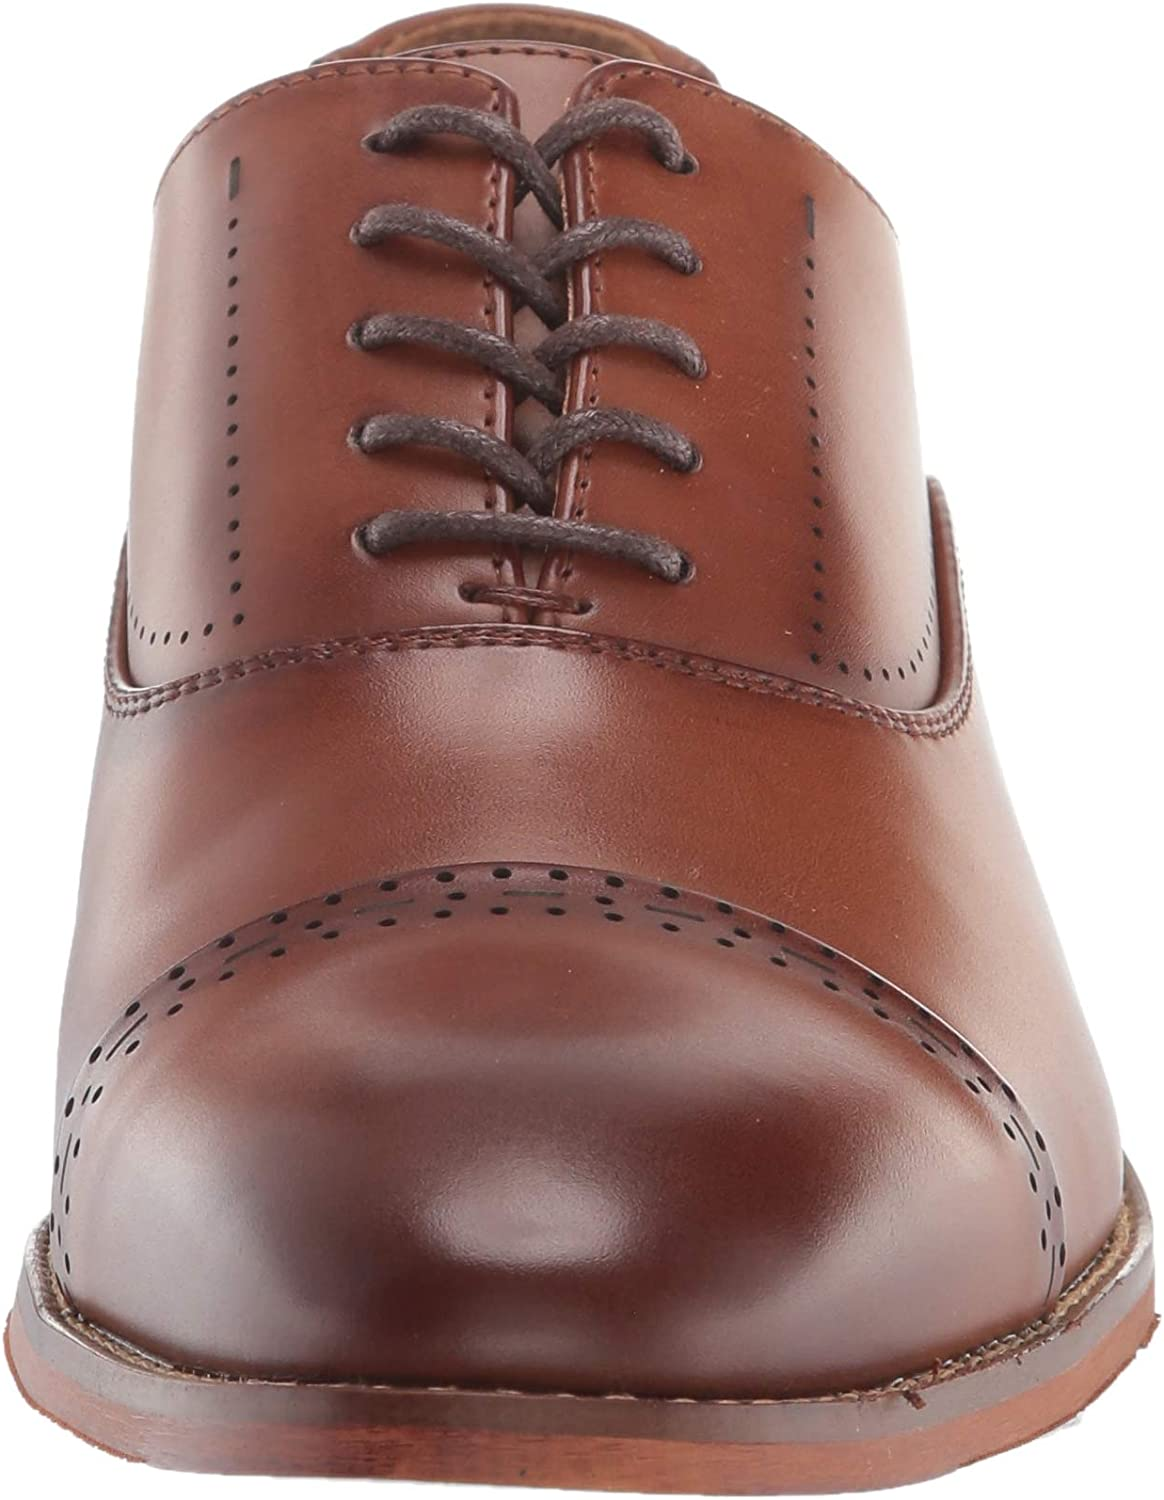 Kenneth Cole REACTION Men's Blake Lace Up BRG Ct Oxford